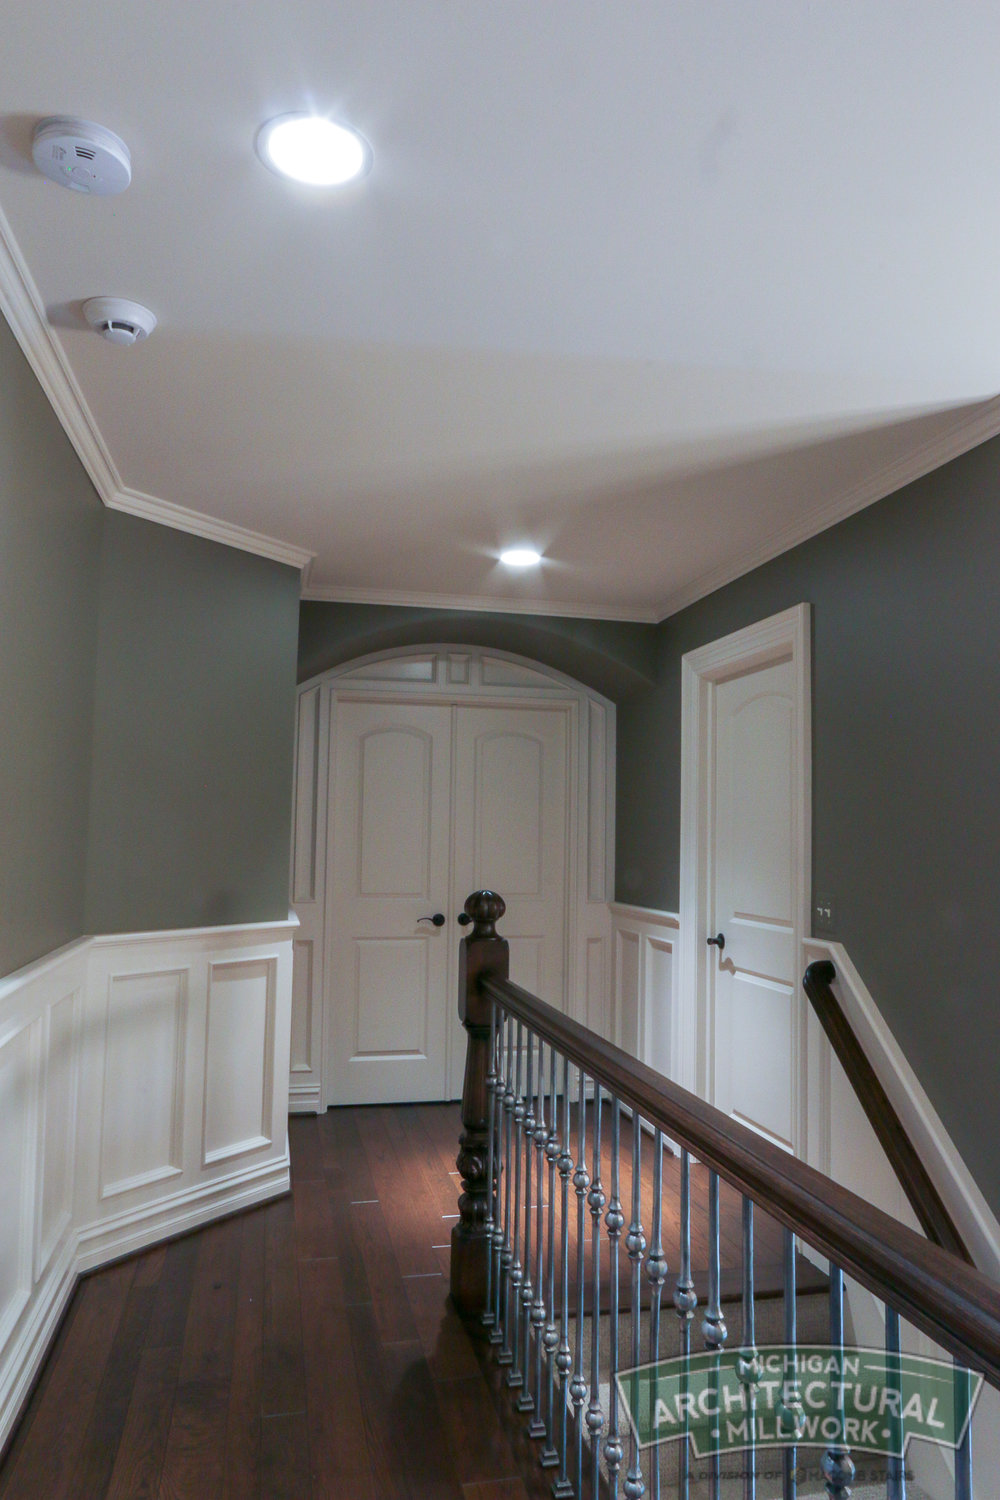 Michigan Architectural Millwork- Moulding and Millwork Photo-191.jpg